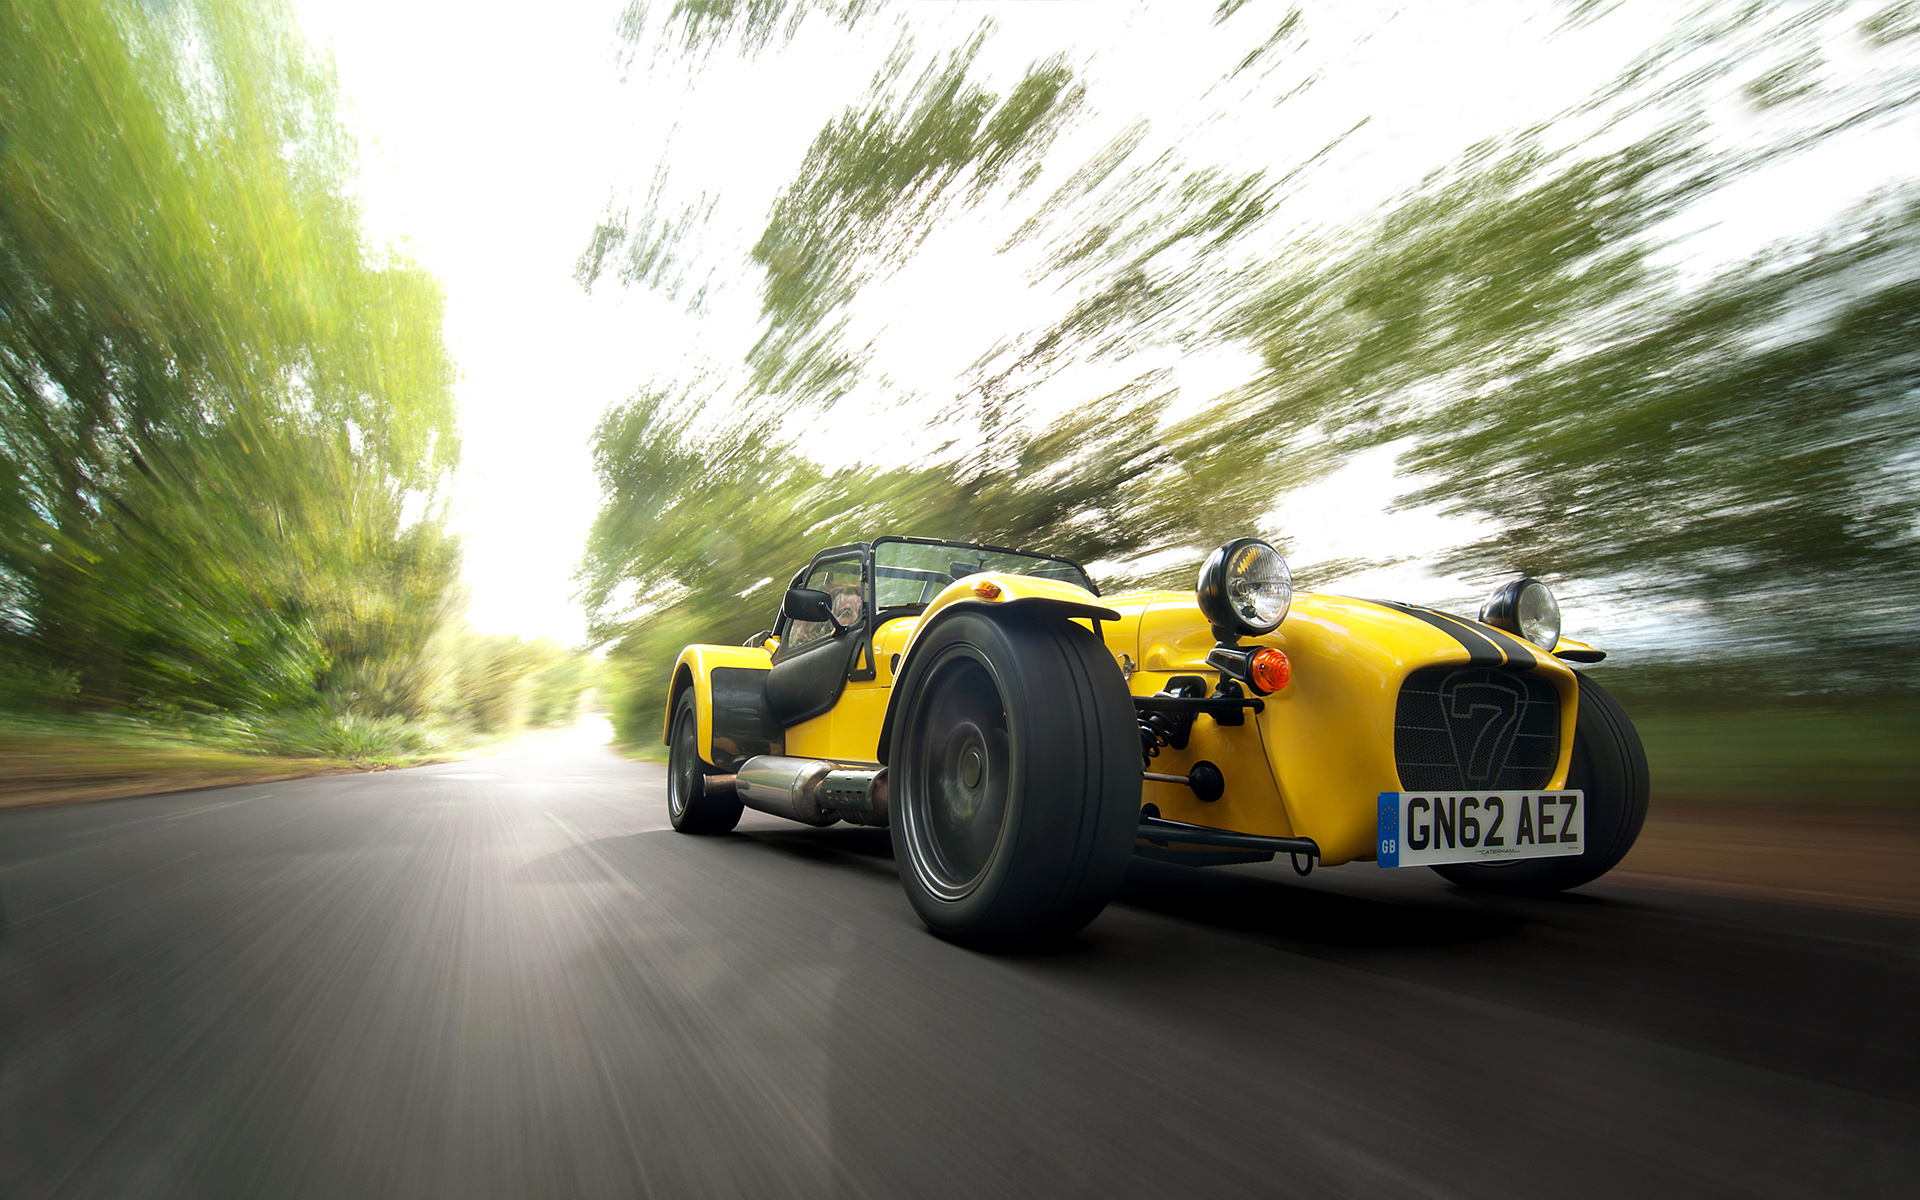 Caterham Supersport R - 1920x1200